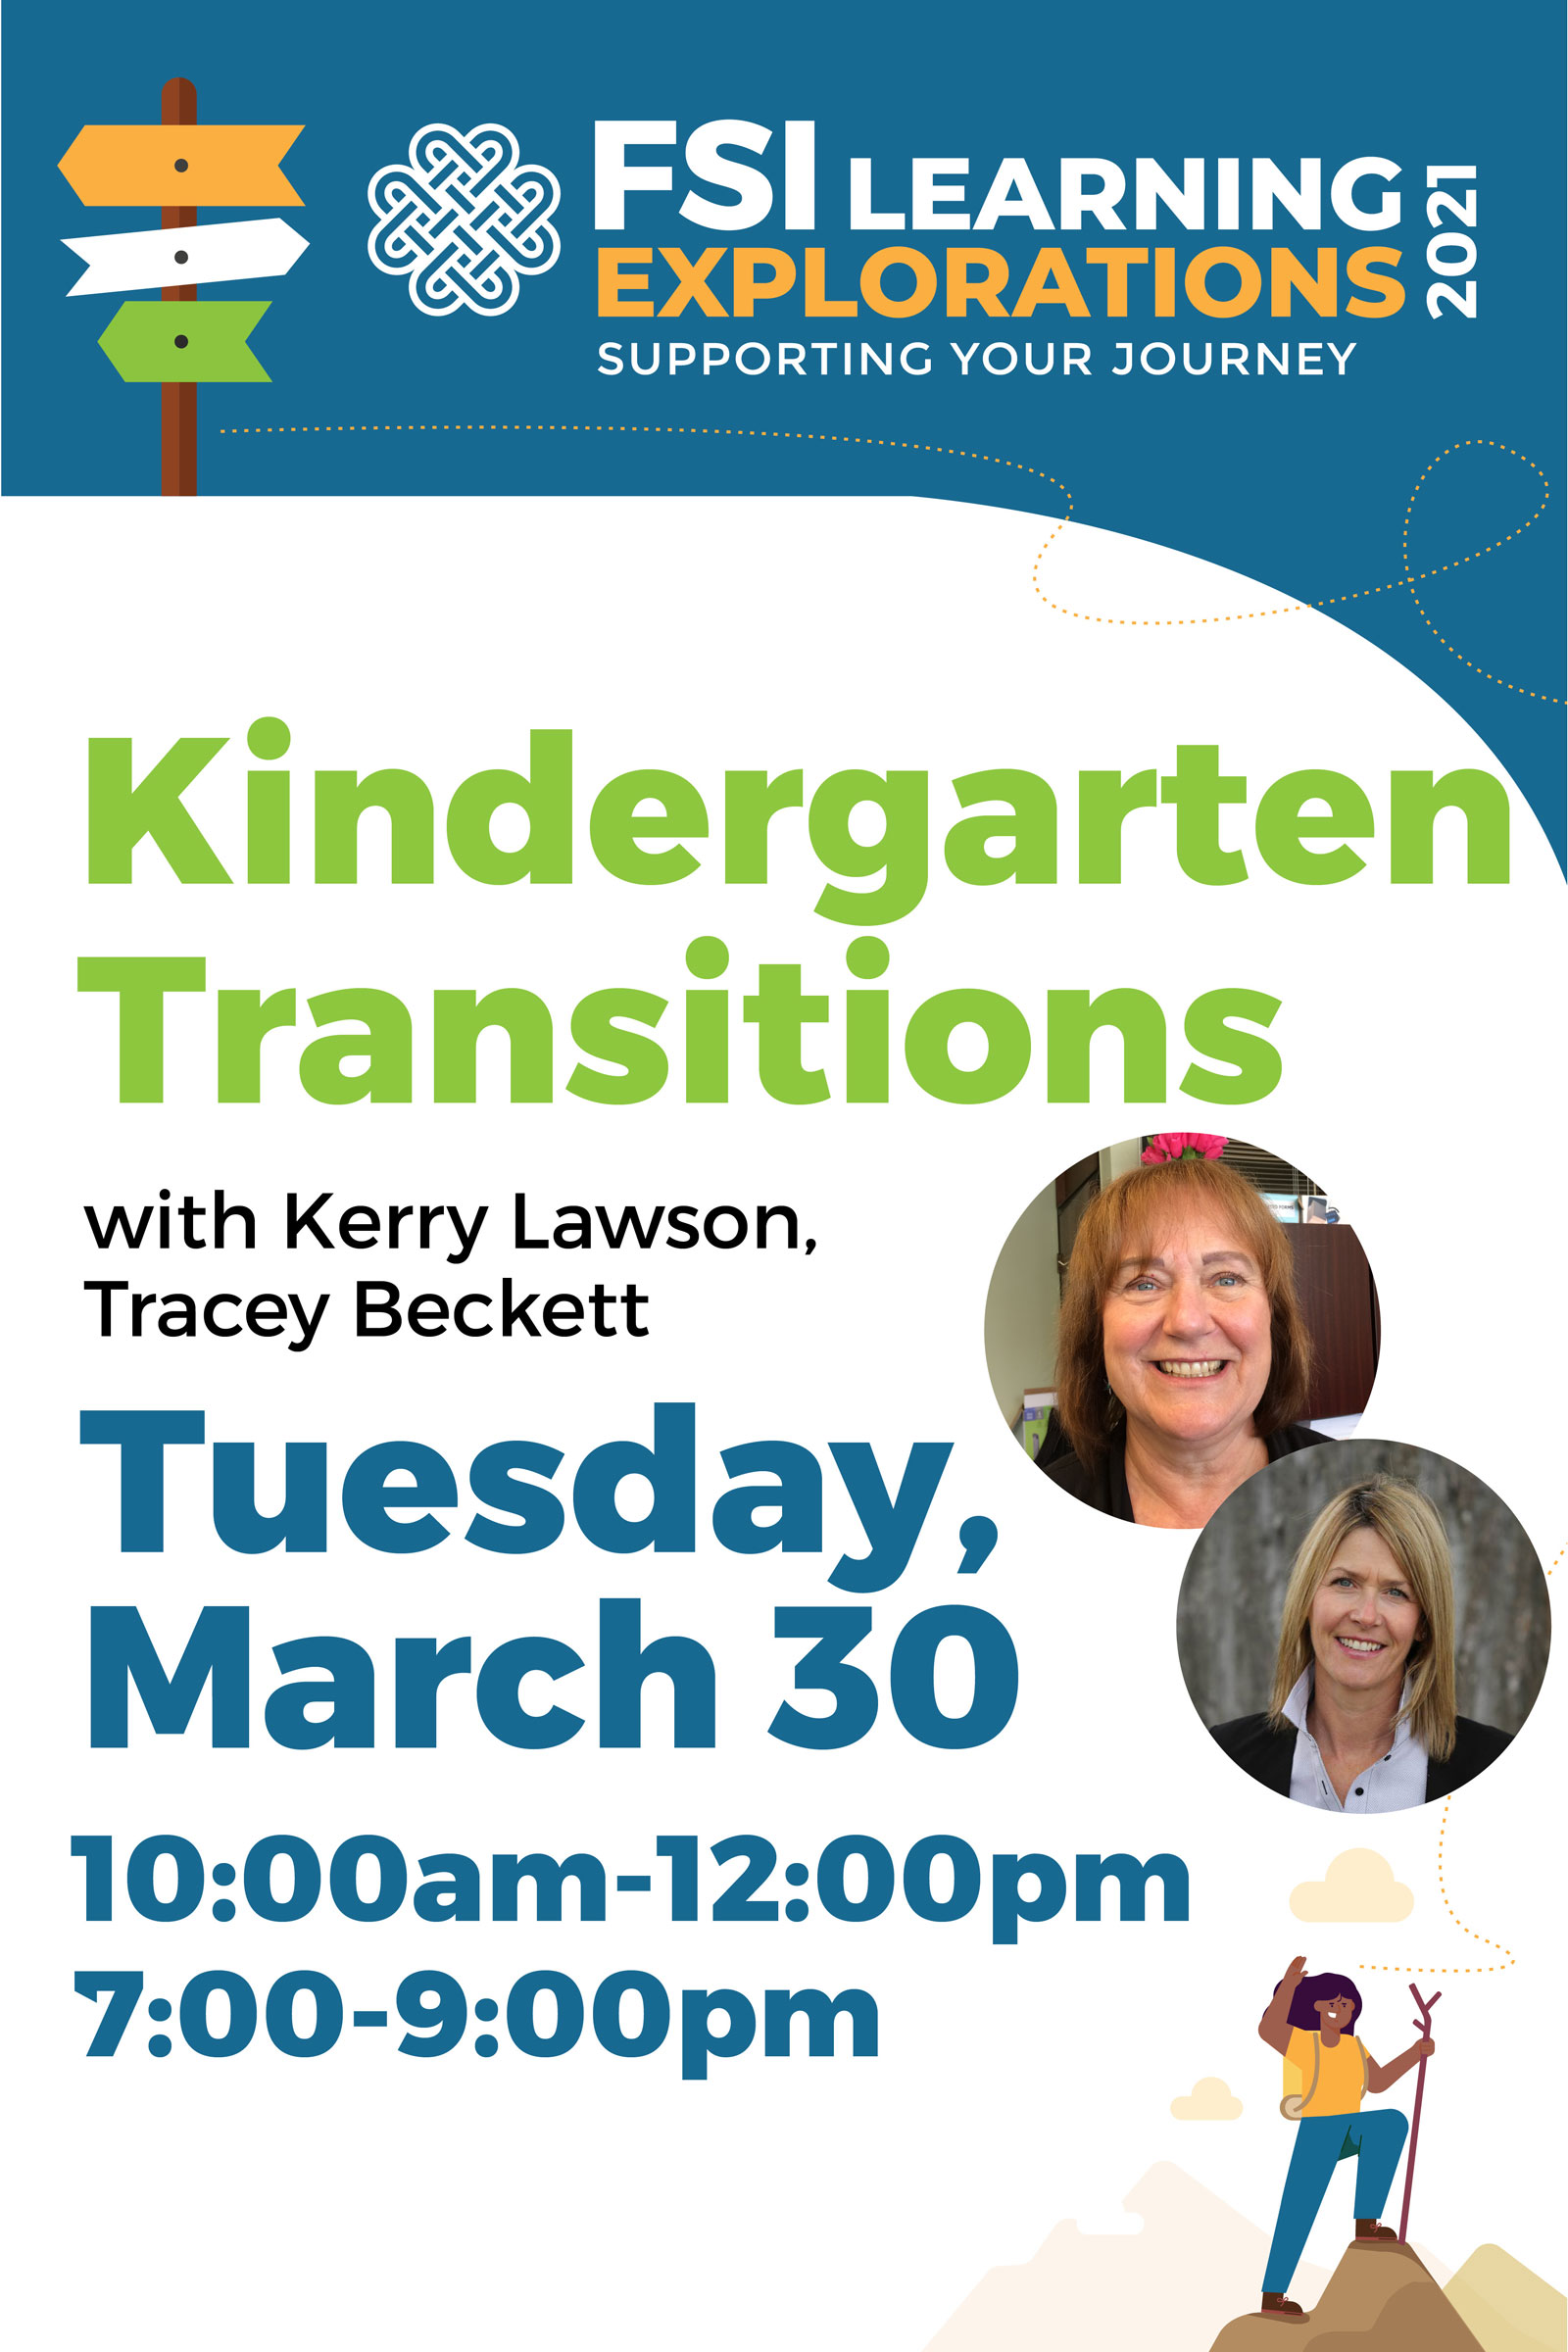 FSIBC Learning Explorations - Kindergarten Transitions